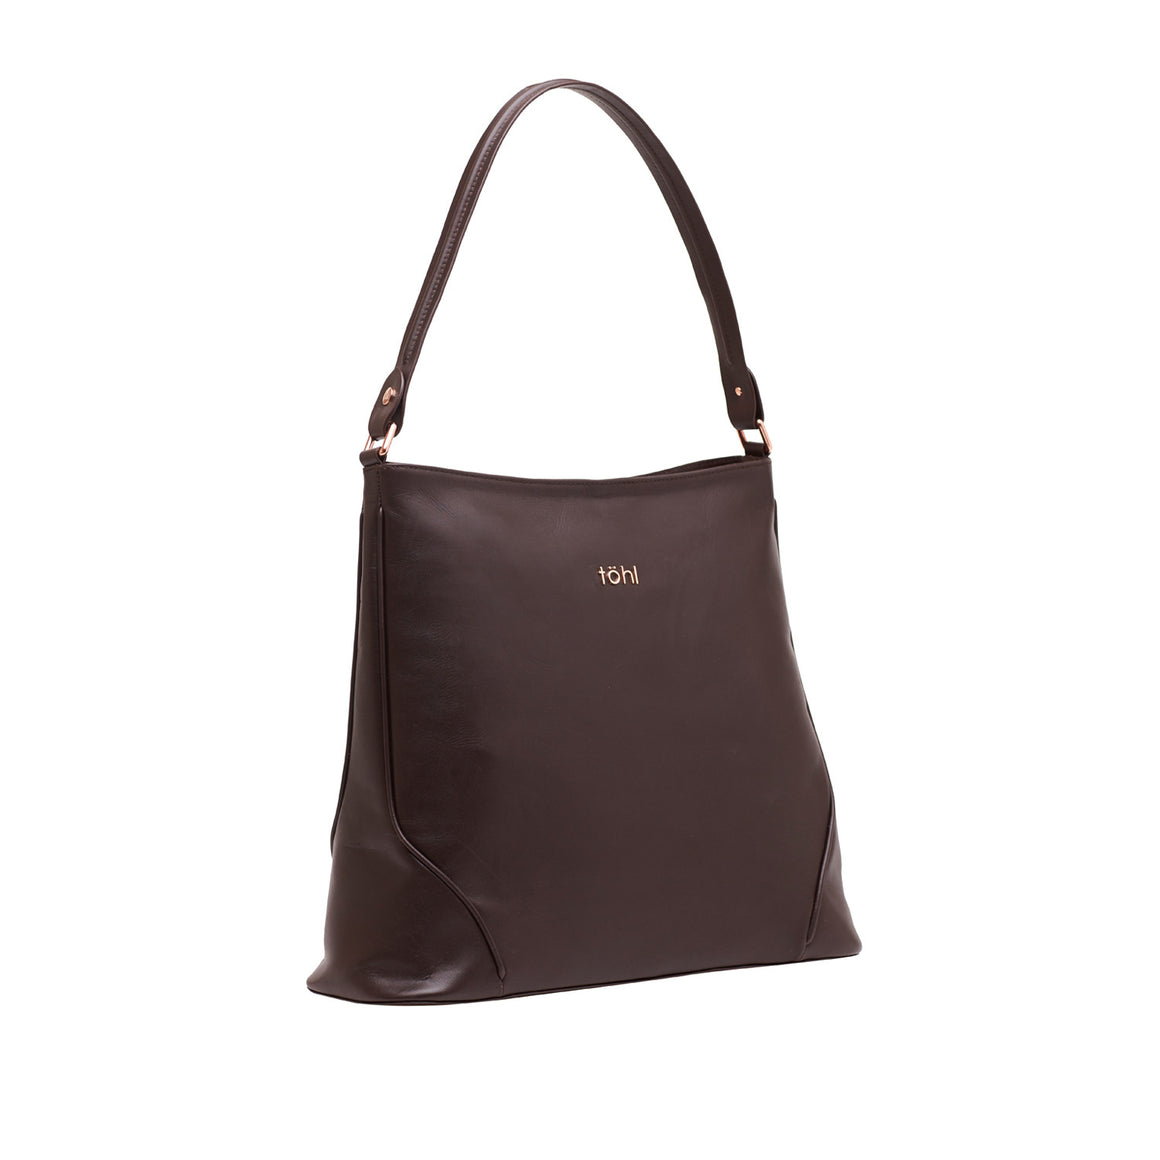 SB 0010 - TOHL ALEXA WOMEN'S SHOULDER BAG - MOCHA